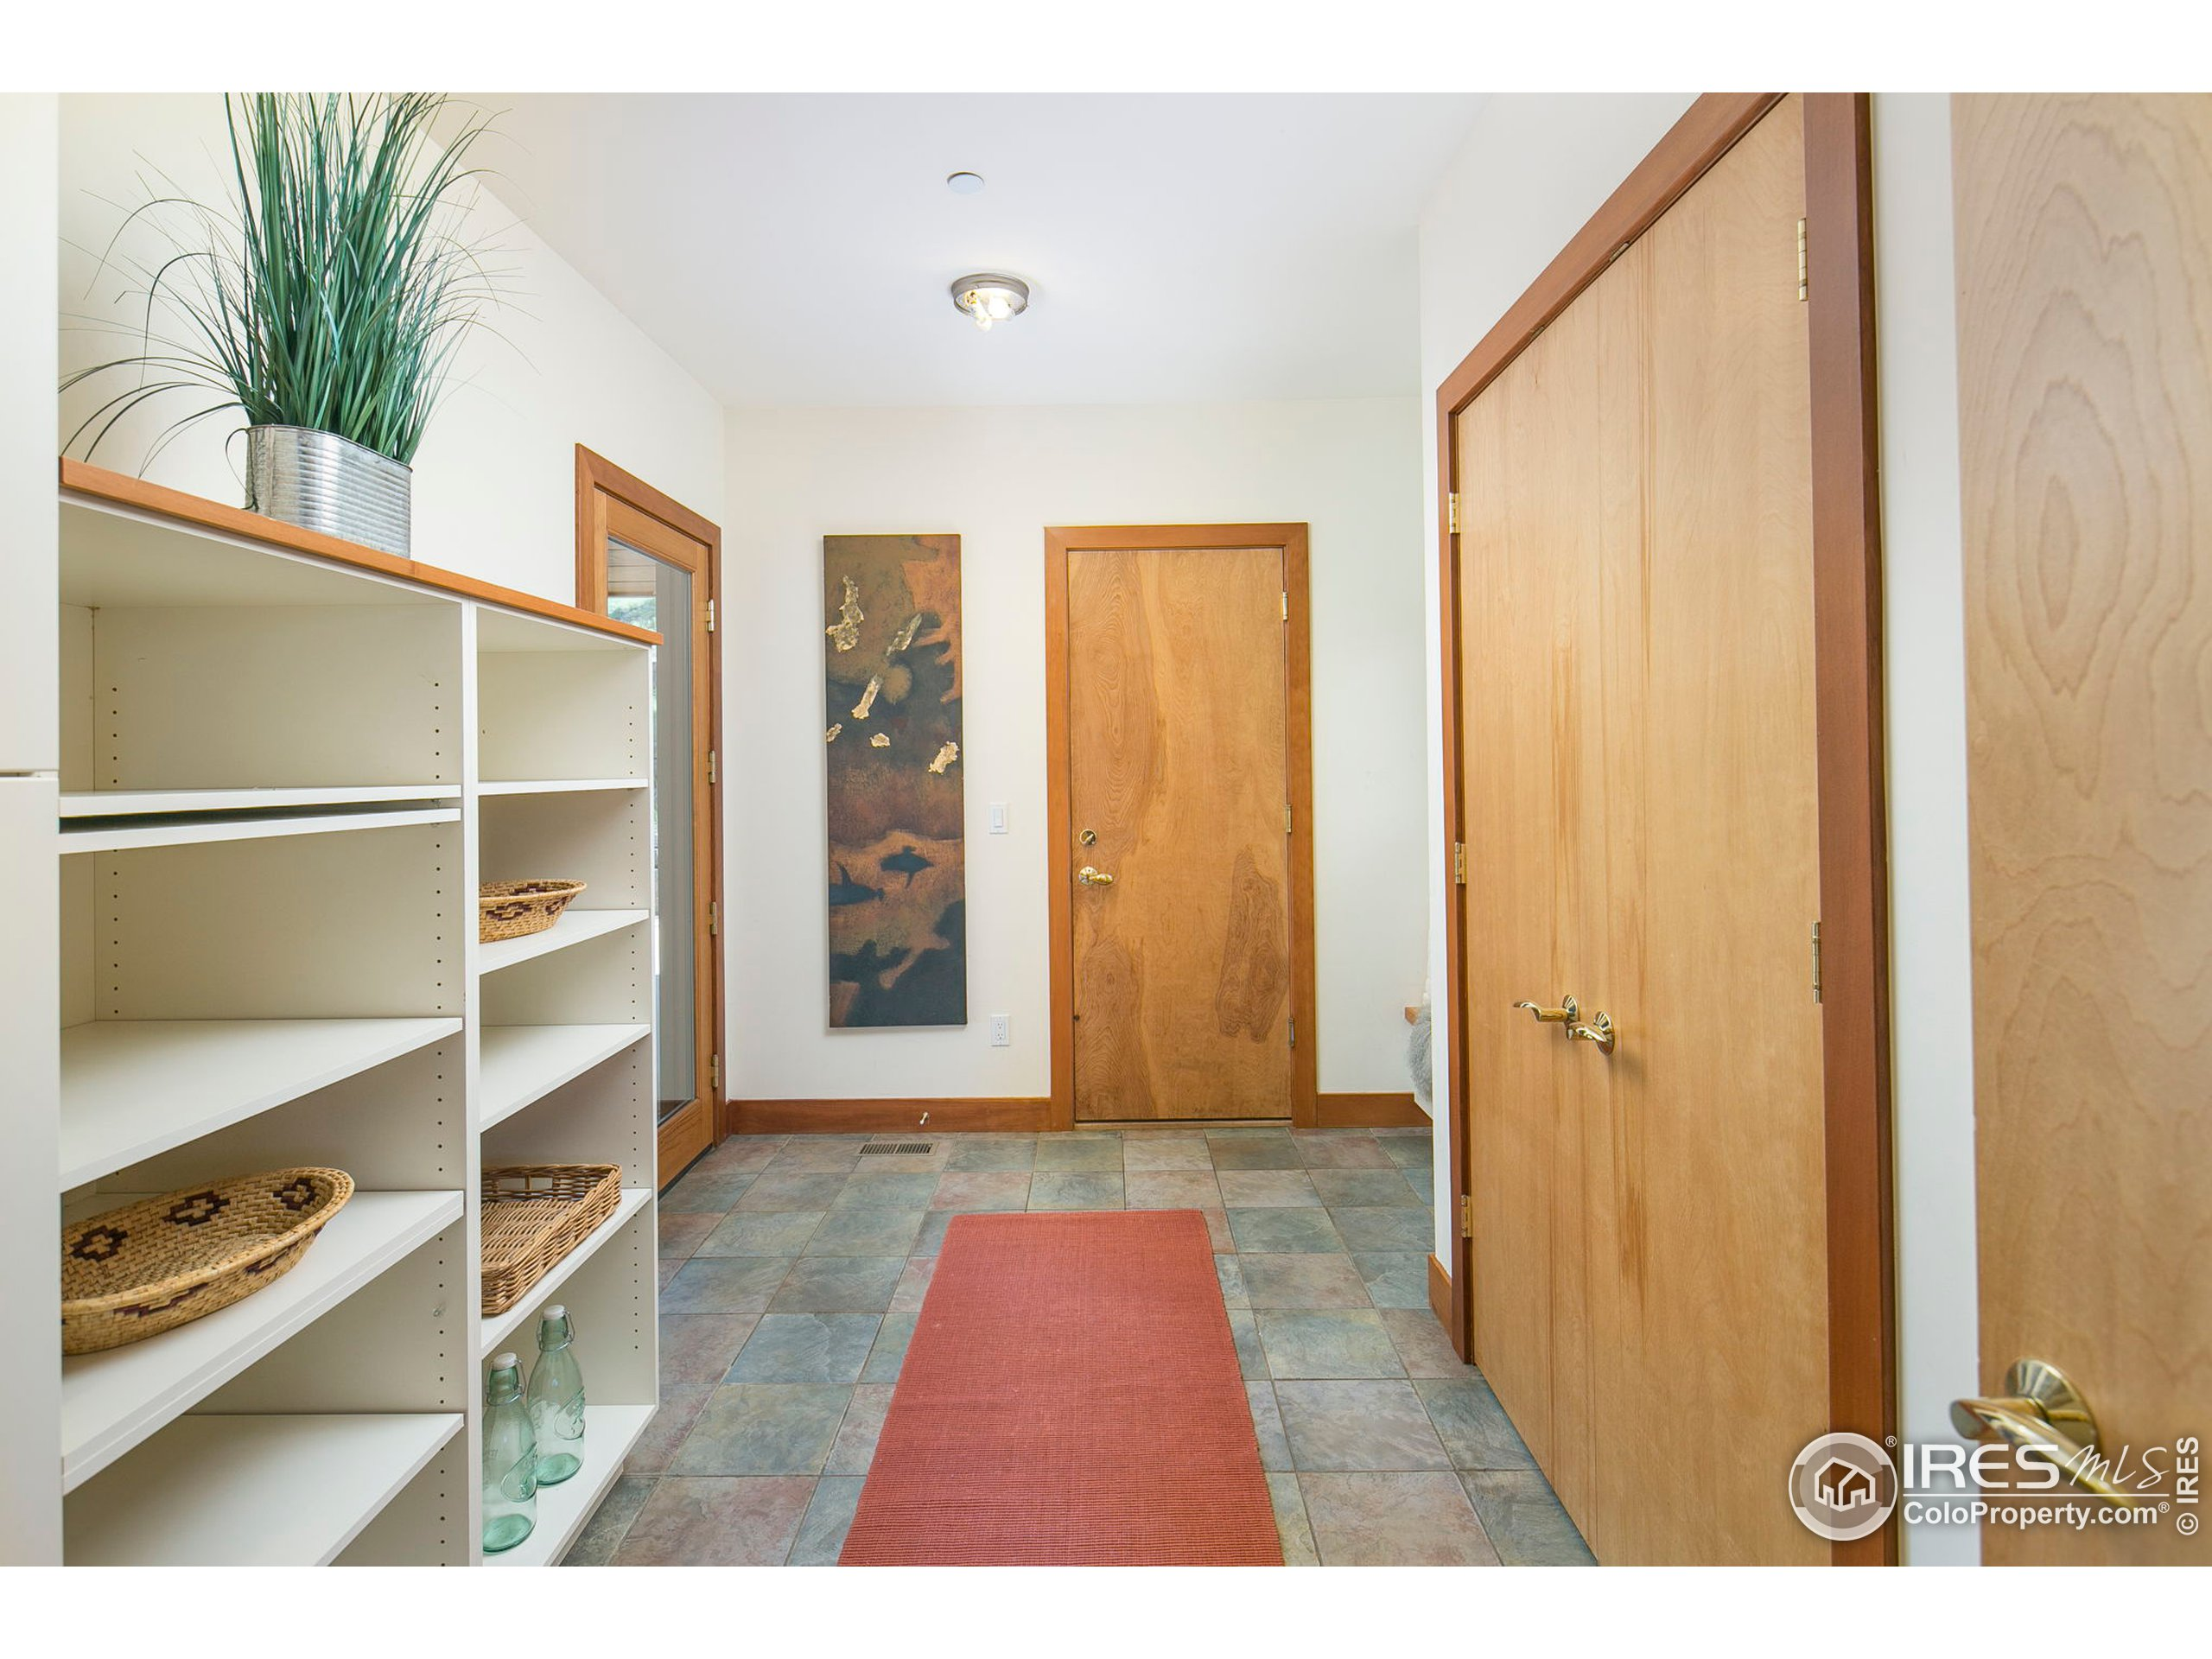 Mudroom with entry from garage or outside